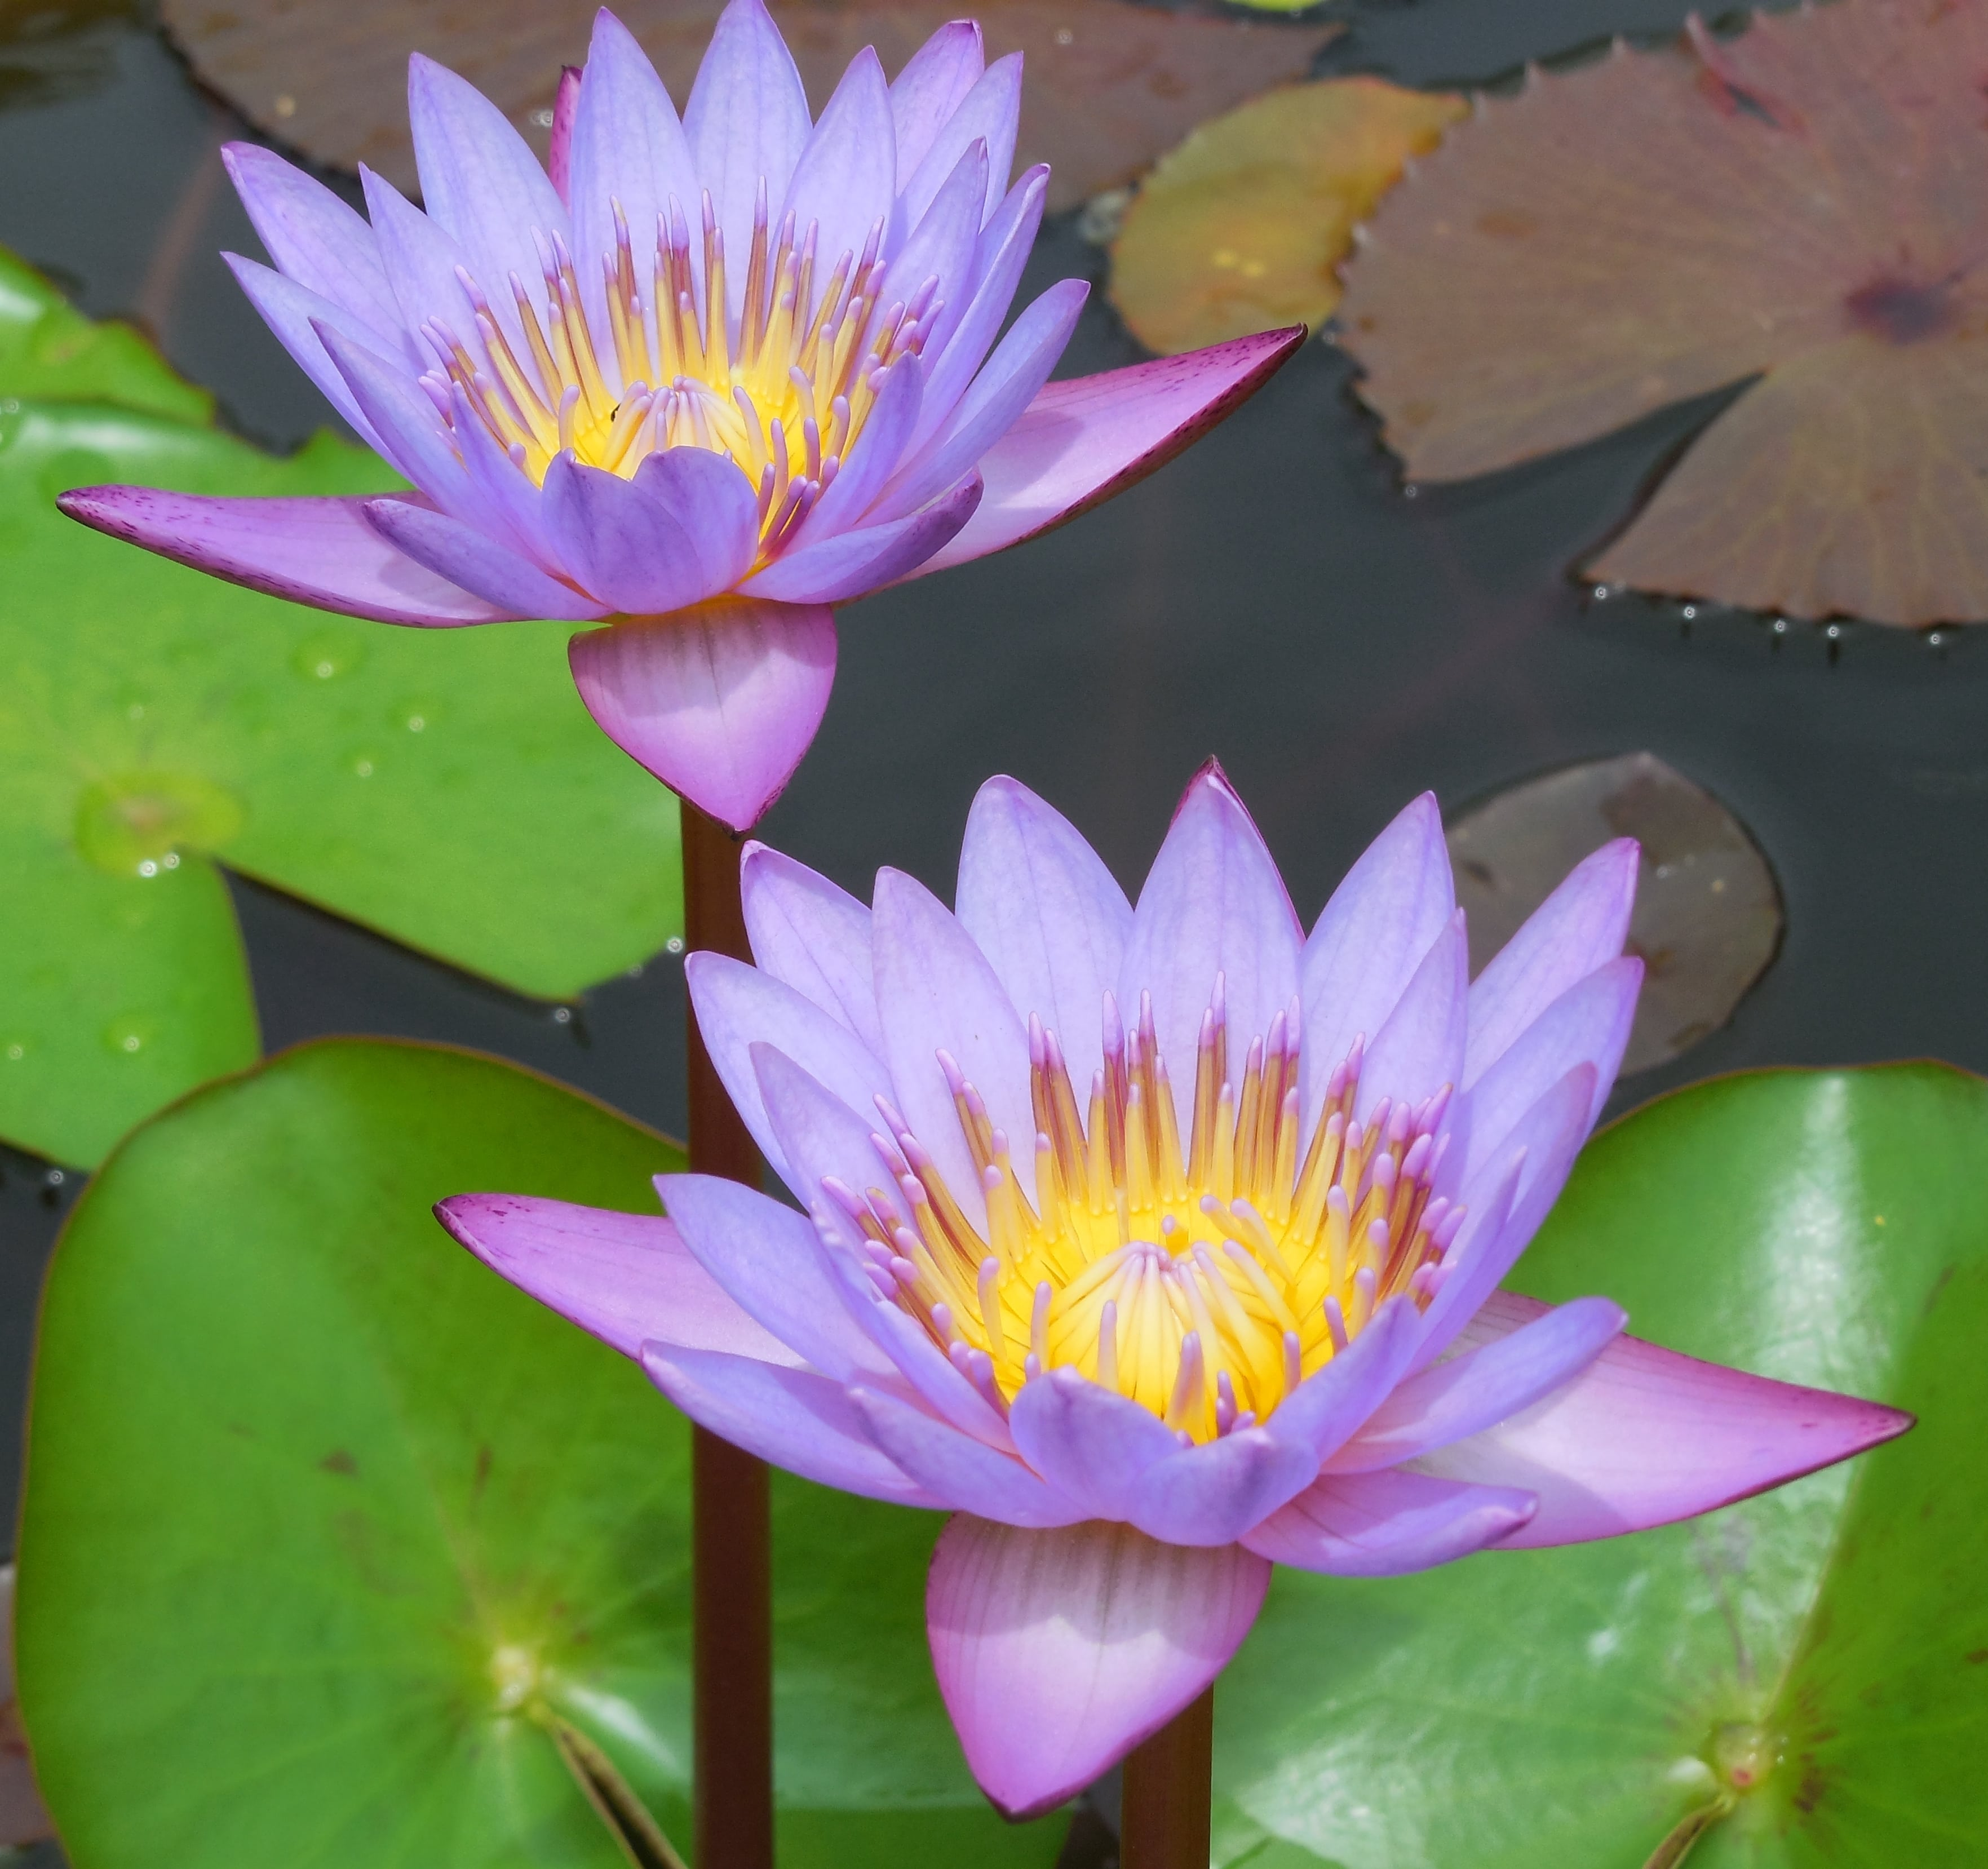 Best all flowers wikipedia in hindi image collection water lily flower meaning in hindi skill floor interior lotus flower wikipedia in hindi images decoration mightylinksfo